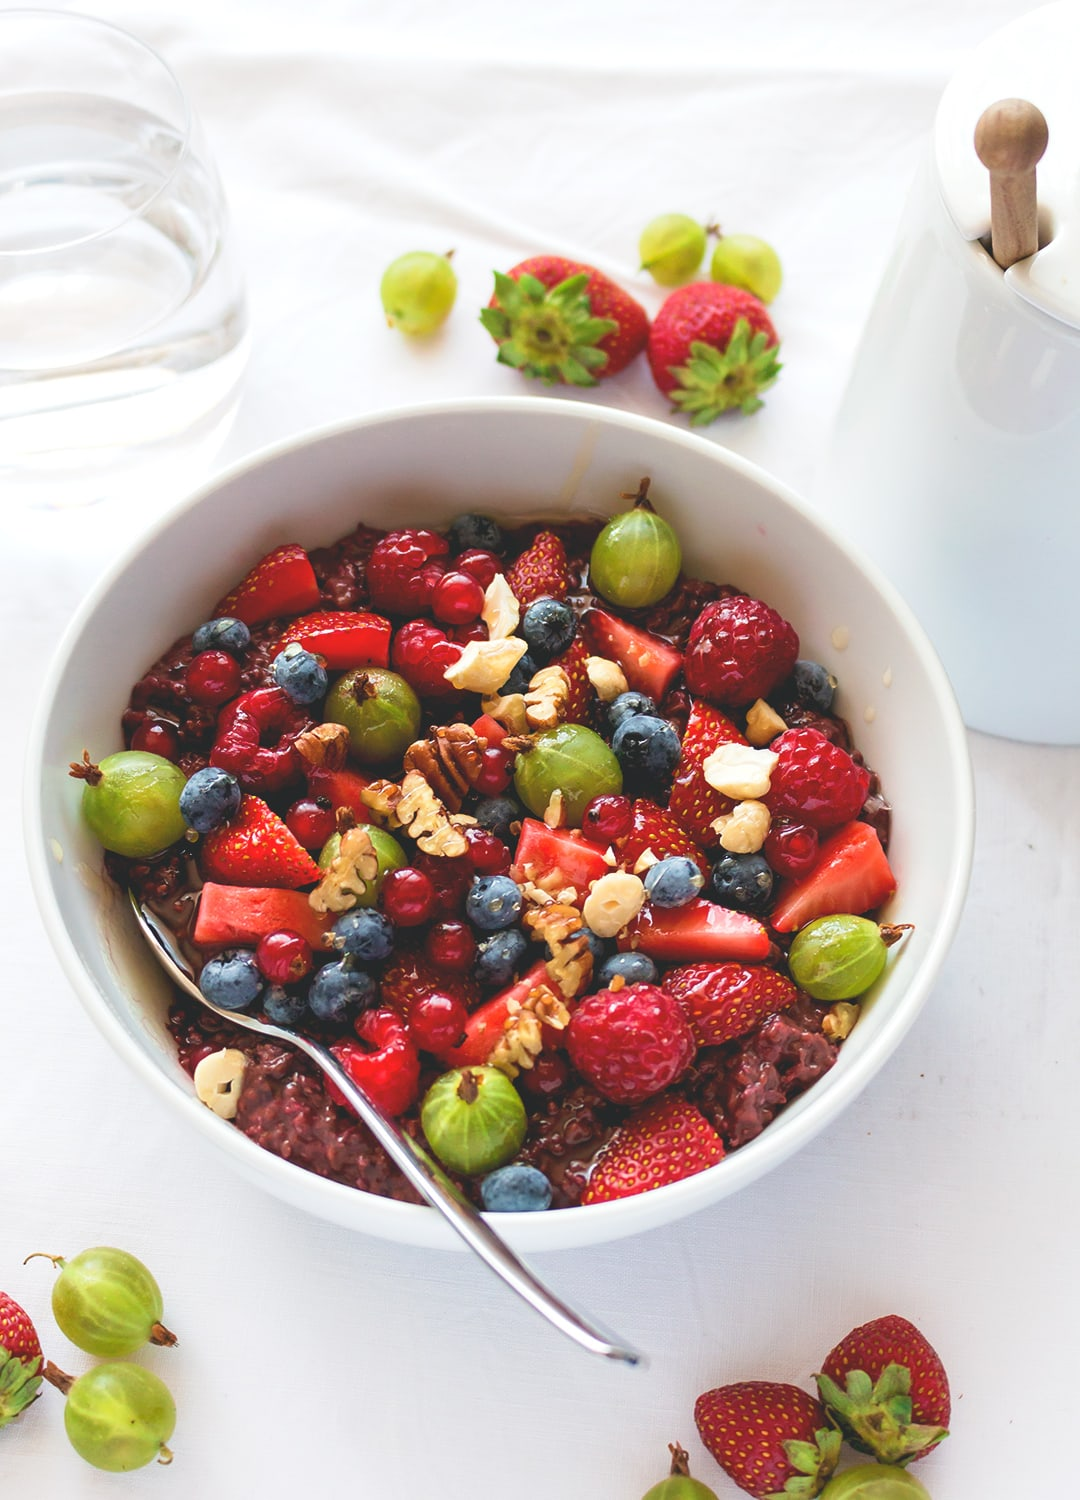 Raspberry Chia Overnight Oats with Acai - the best breakfast to start your day right. Full of raspberries, cacao, acai, and chia seeds. YUM! We love this recipe!  thehealthfulideas.com